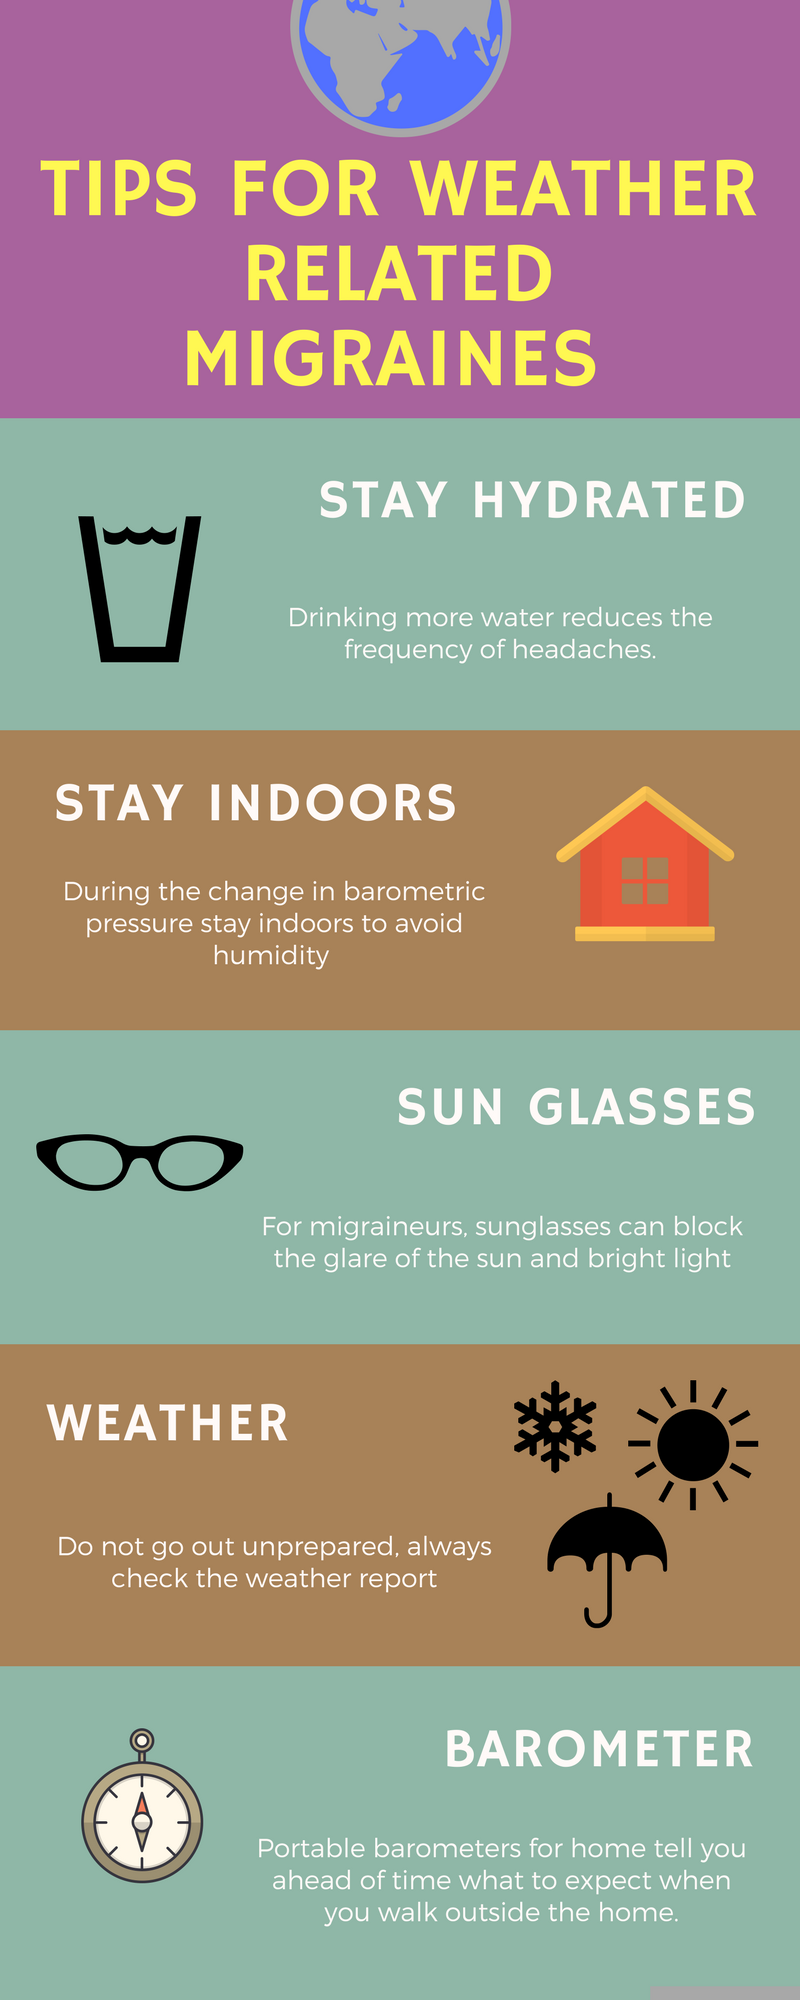 Tips for weather related migraines